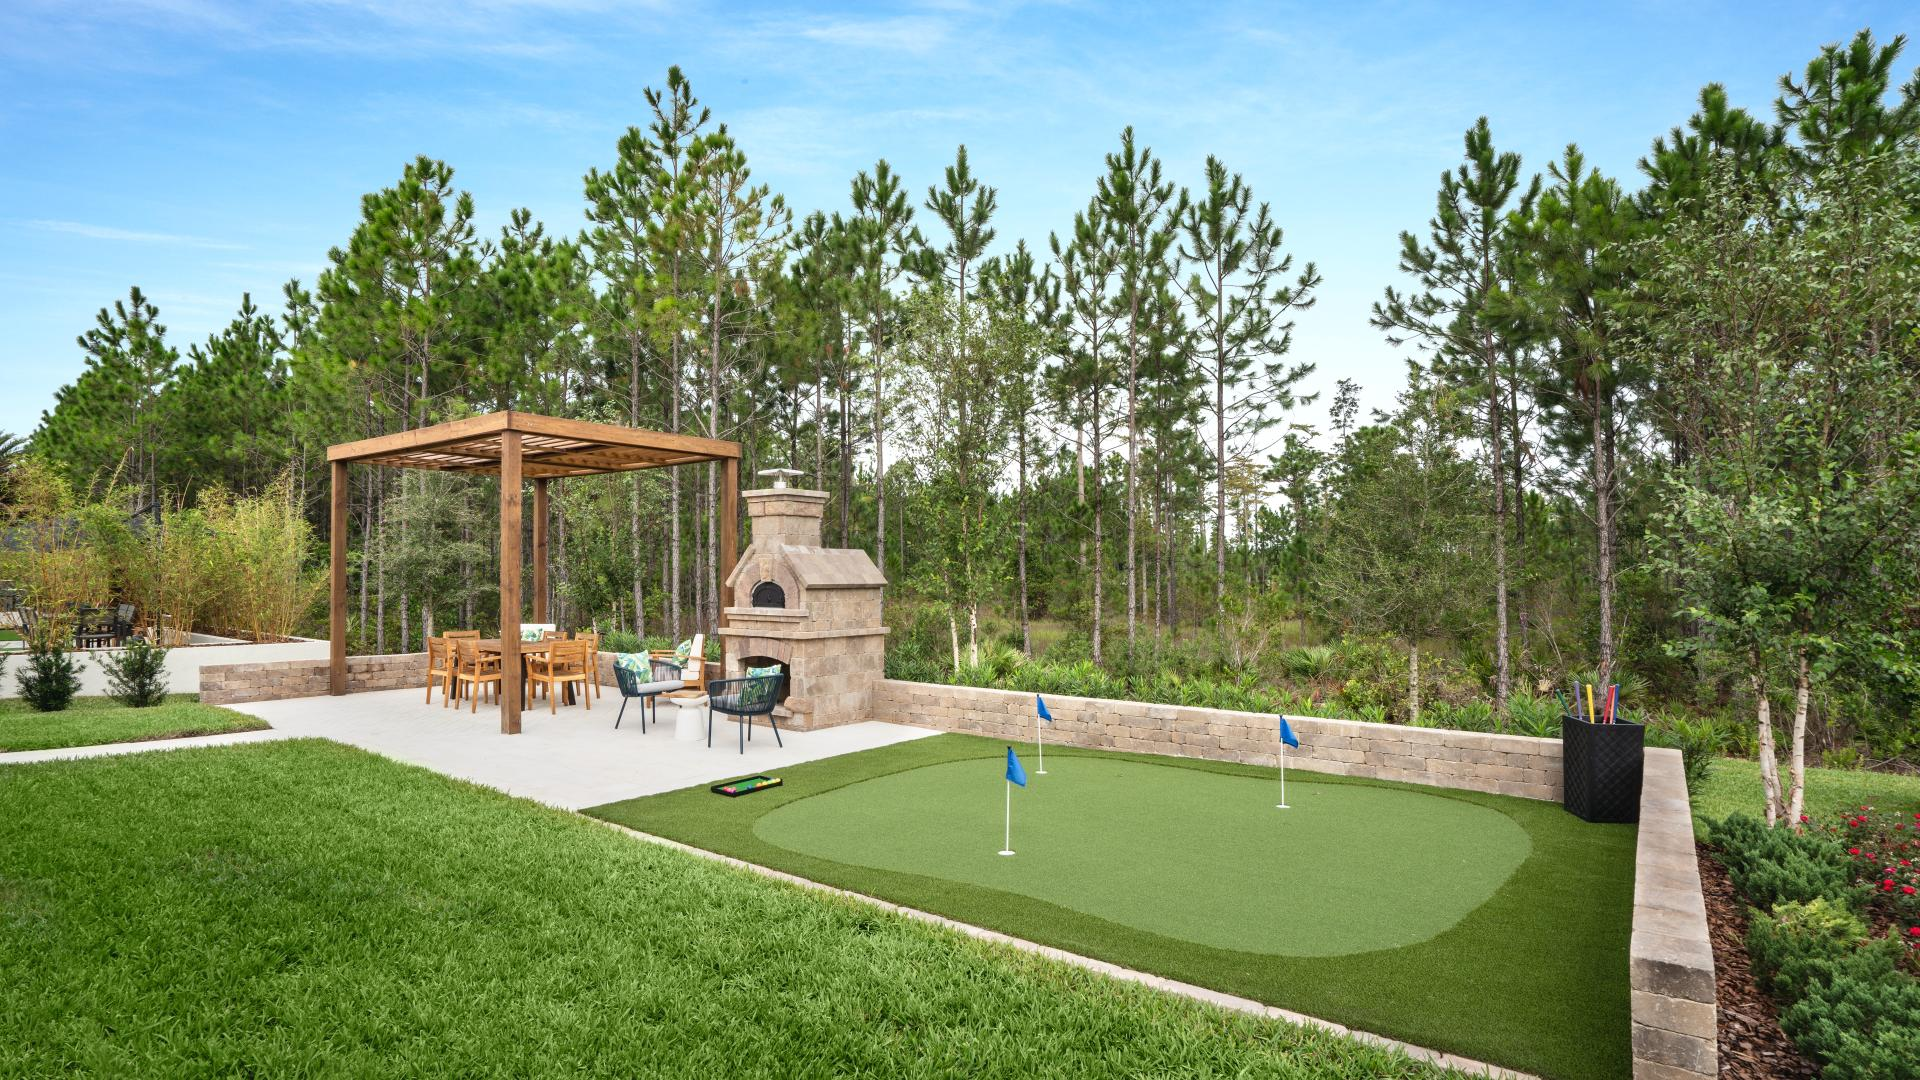 Creative backyard designs for your family needs